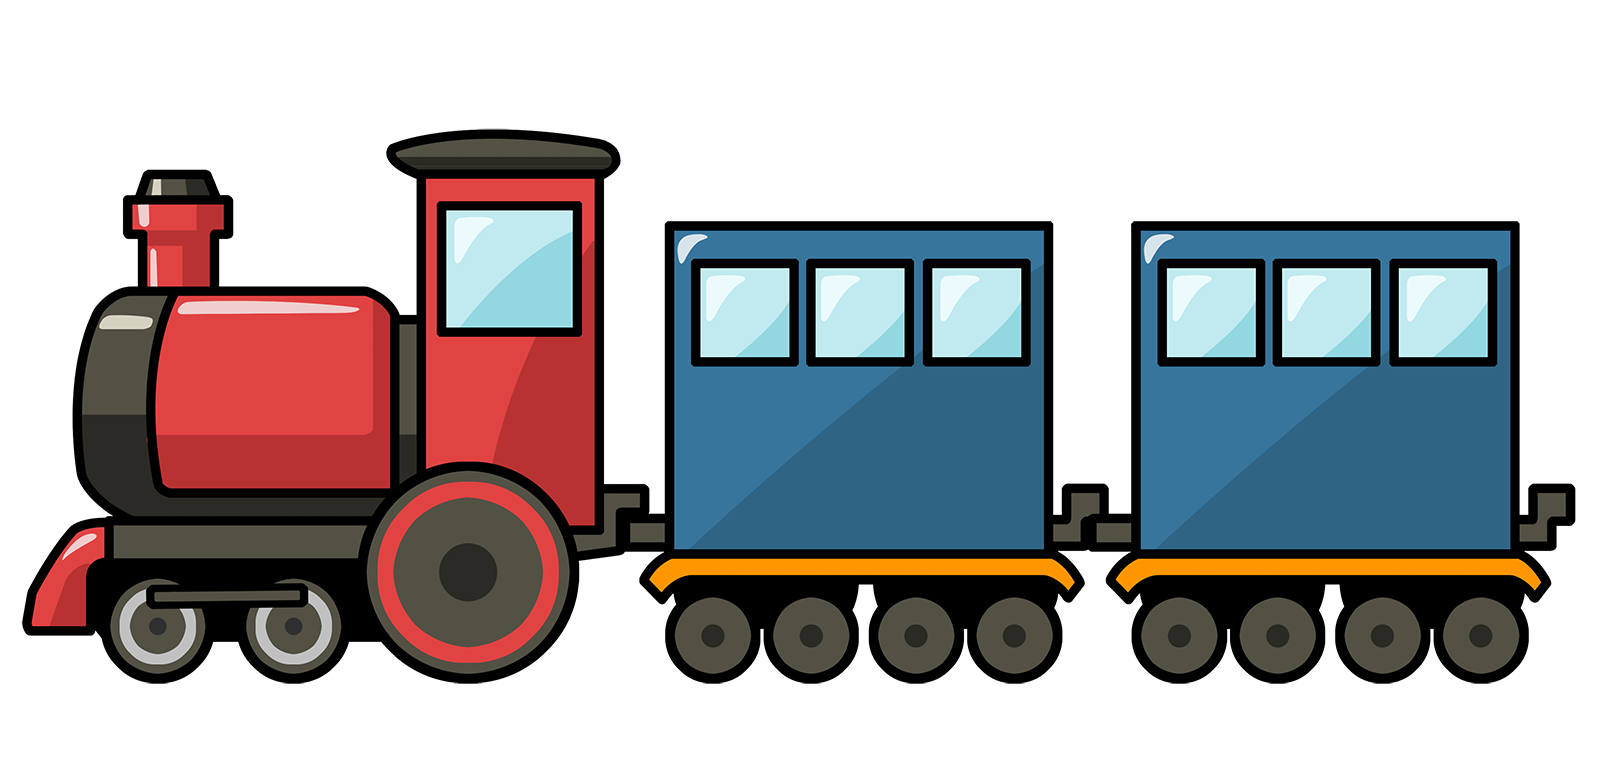 caboose clipart old train